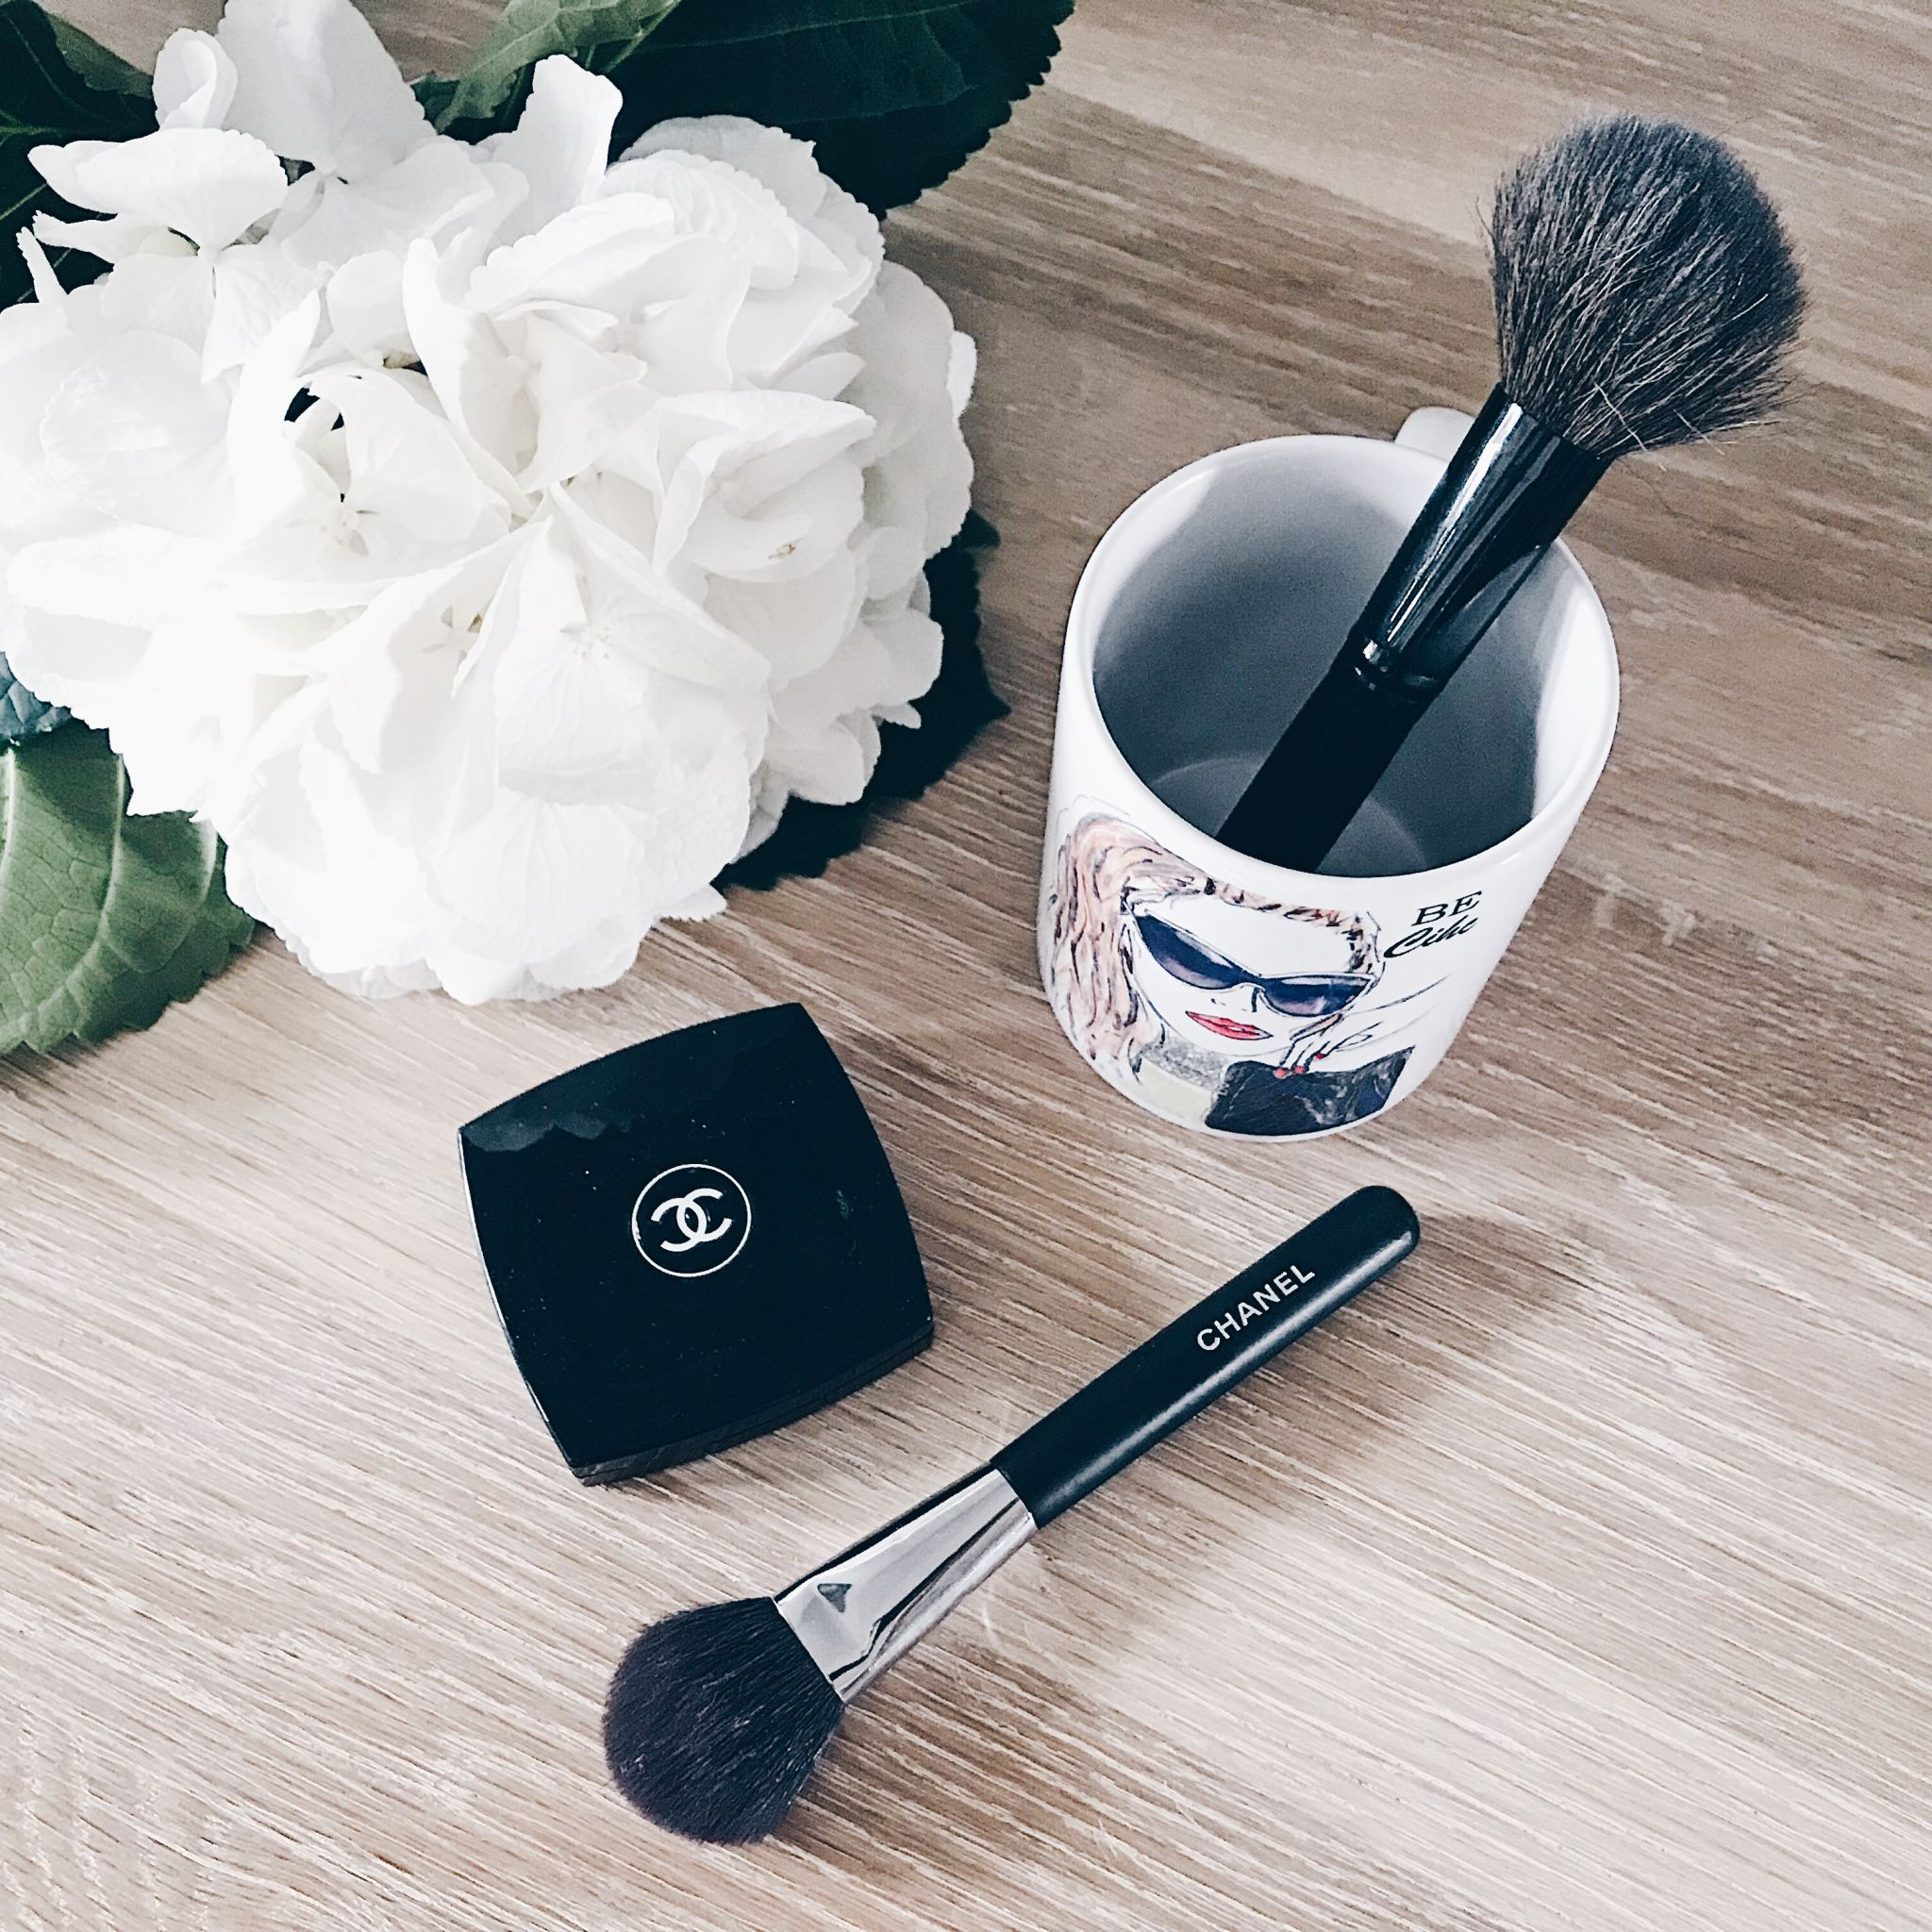 PENNELLI TRUCCO - MAKE UP BRUSH KIT